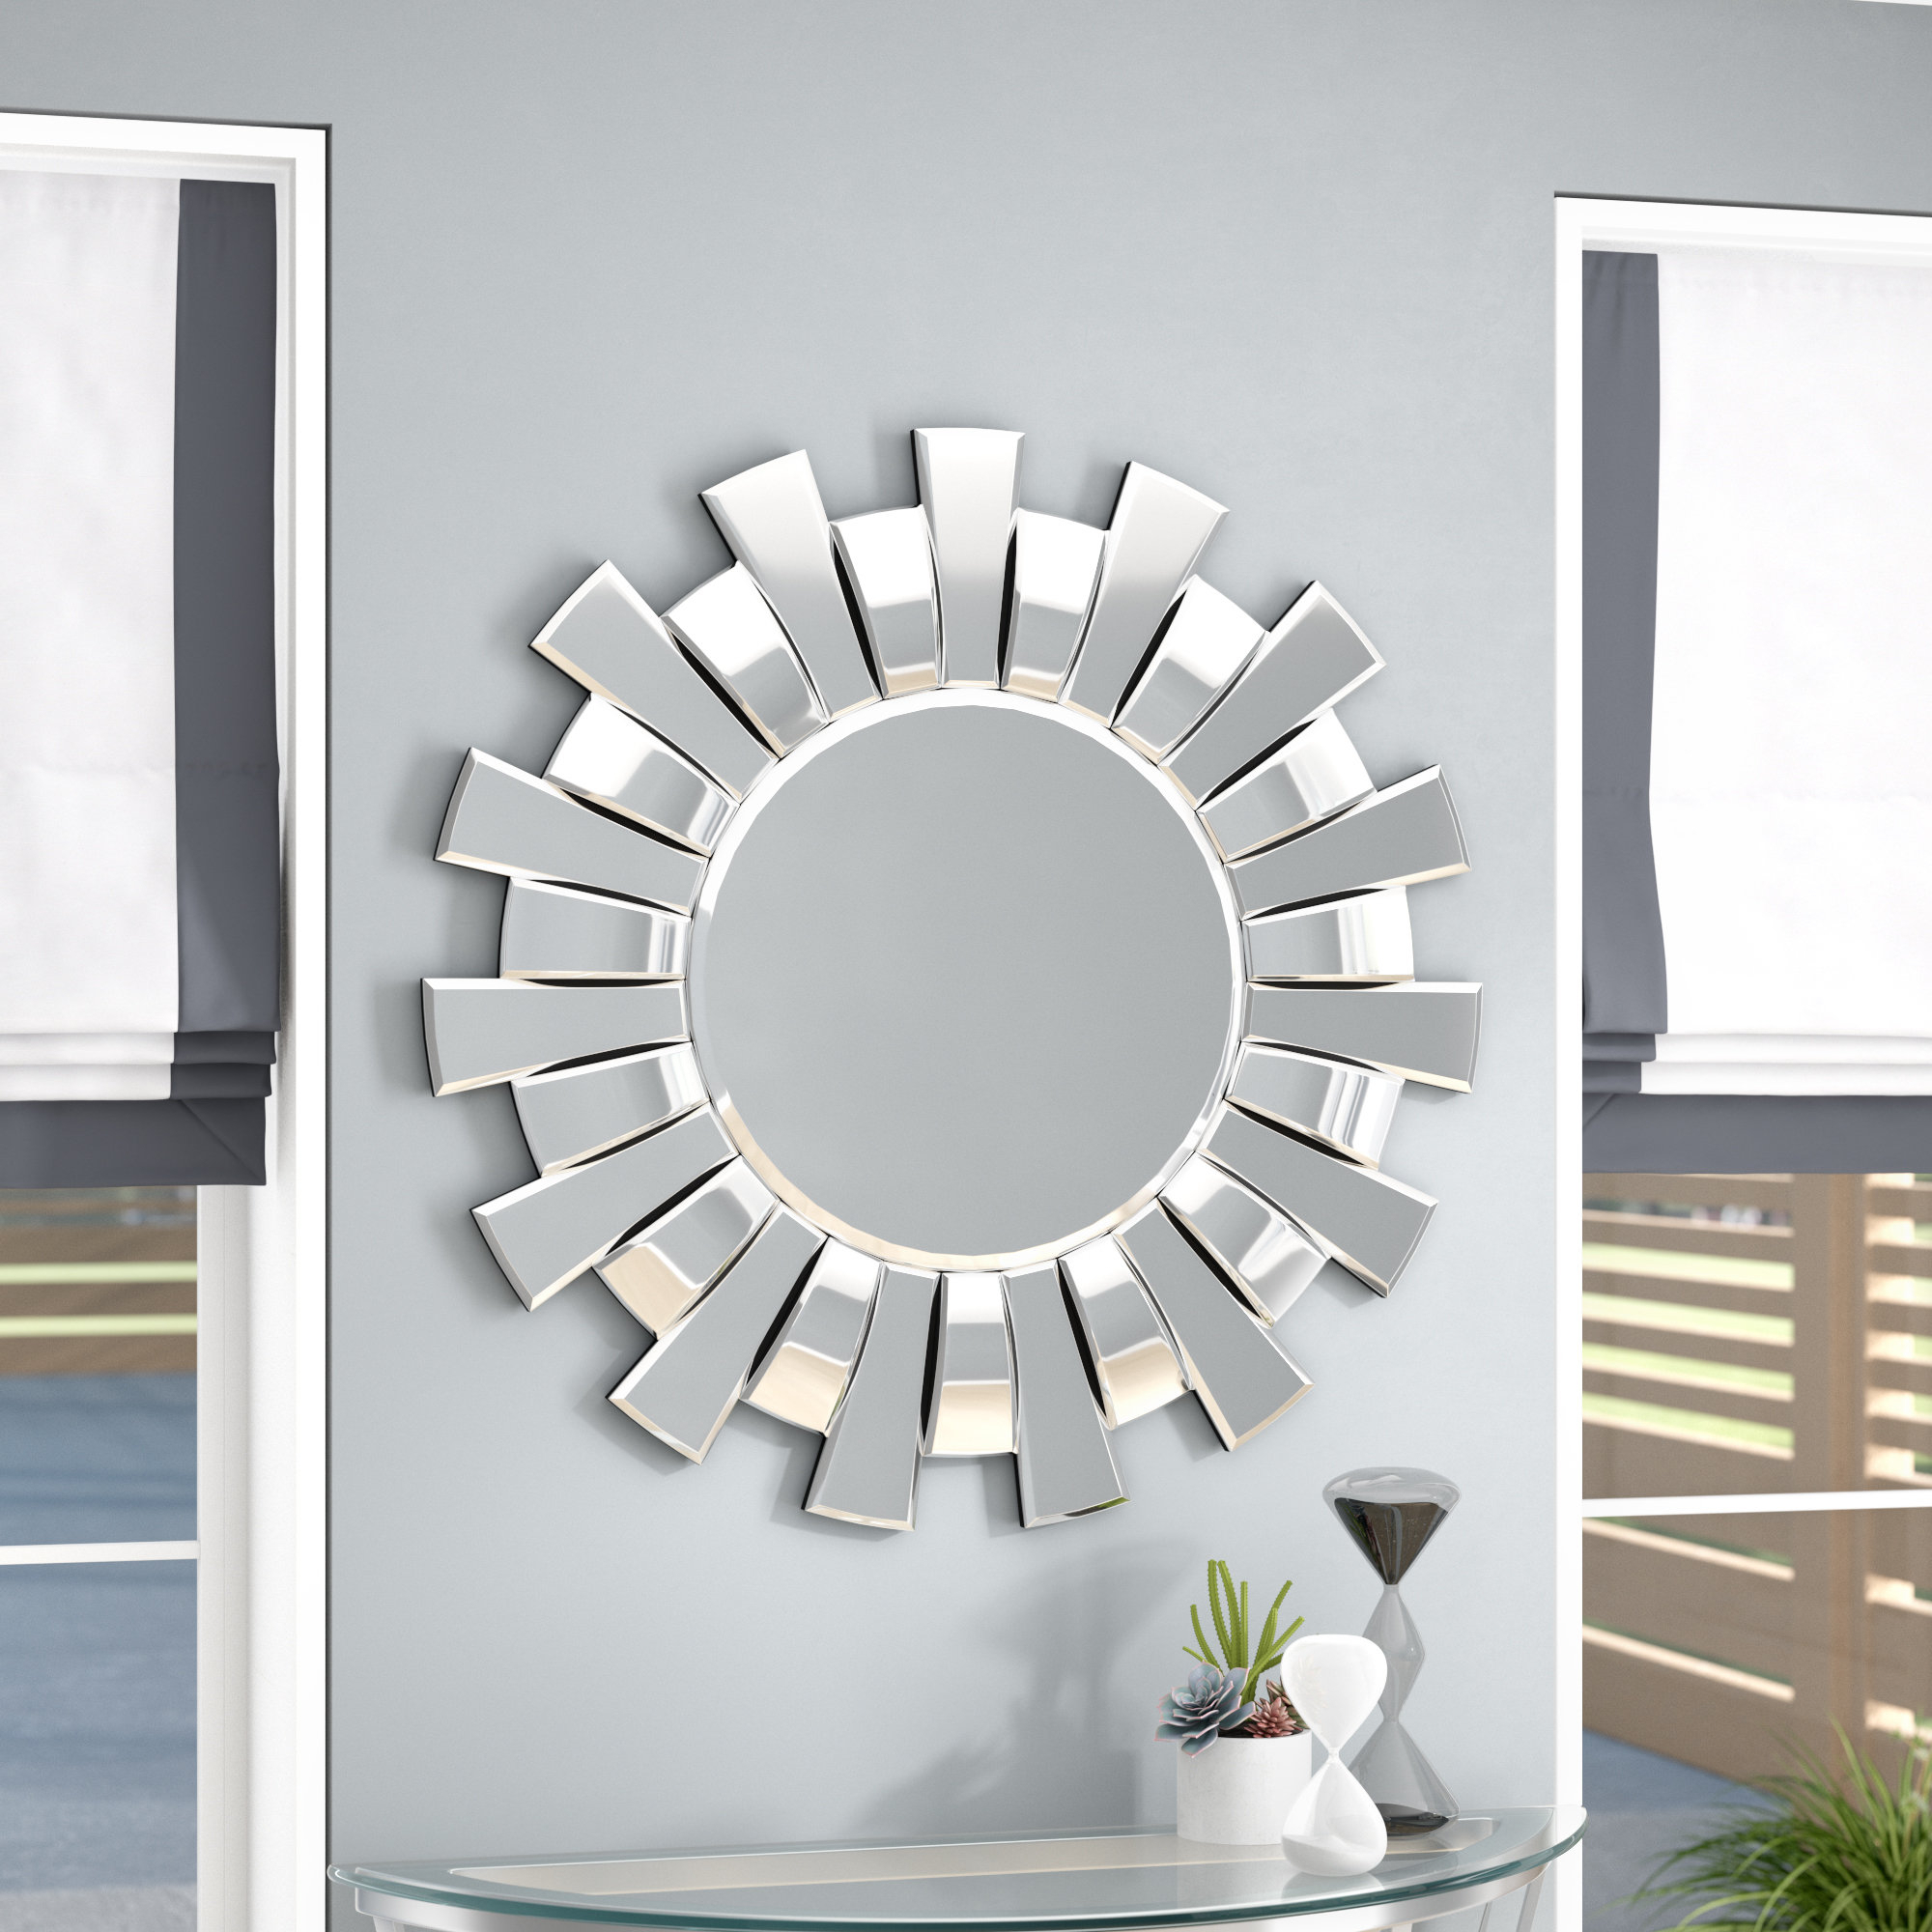 Details About Orren Ellis Sun Burst Circular Glam Beveled Wall Mirror With Favorite Sun Wall Mirrors (View 18 of 20)